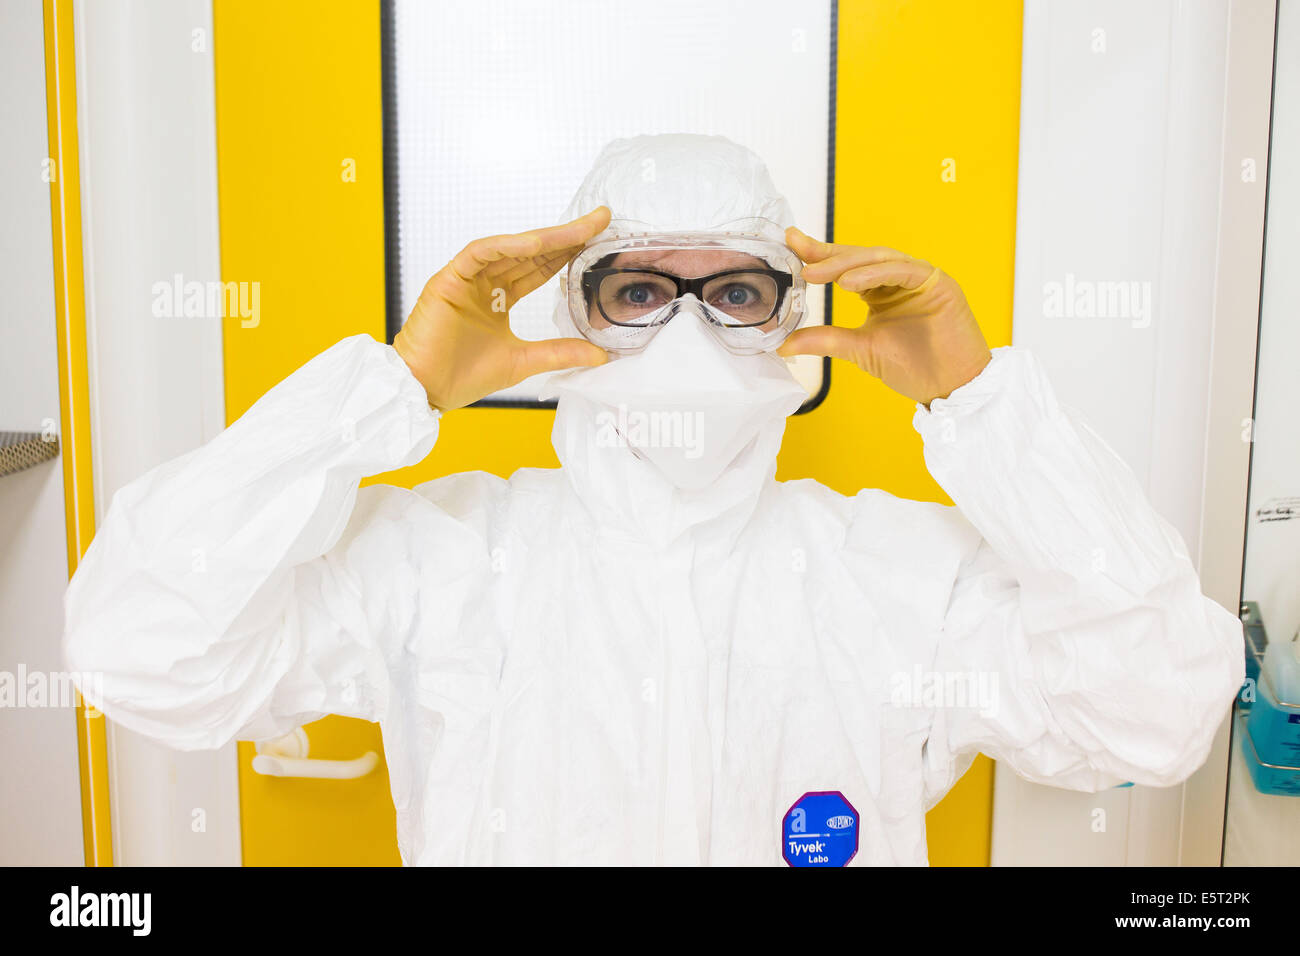 Cleanroom dressing procedure, French Army Blood Transfusion Service (CTSA) in Clamart, France. - Stock Image